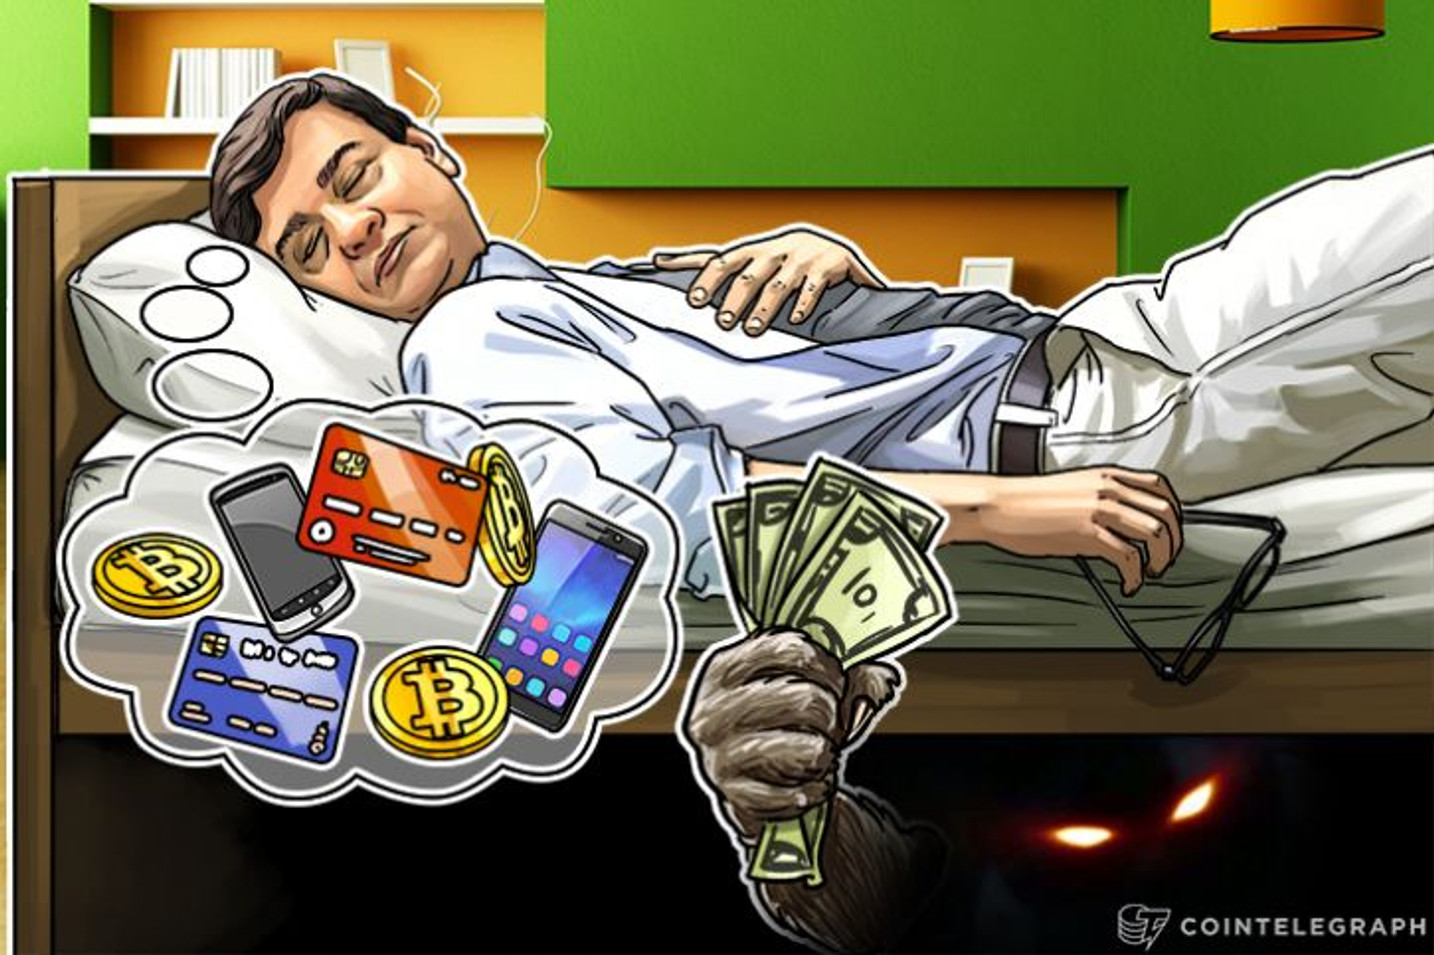 India, Cash and Blockchain: Digital Payments Set to Surge in 2017